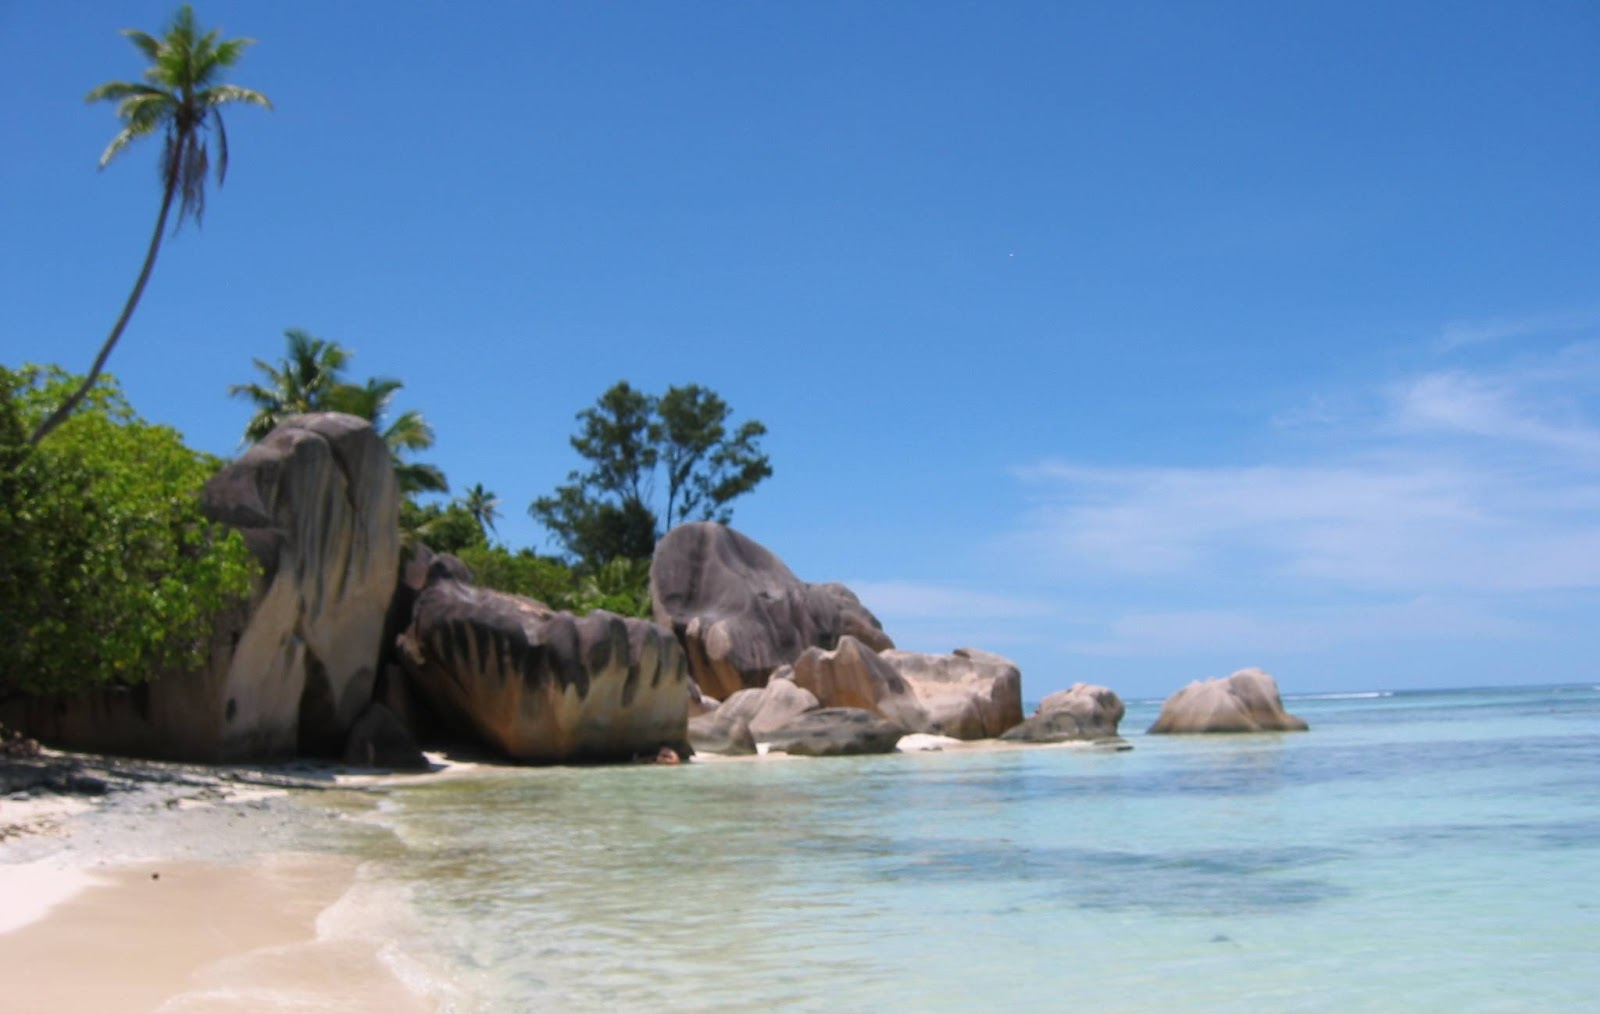 Seychelles Islands Seychelles  city pictures gallery : Seychelles Islands Seychelles Tourist Attractions Exotic Travel ...